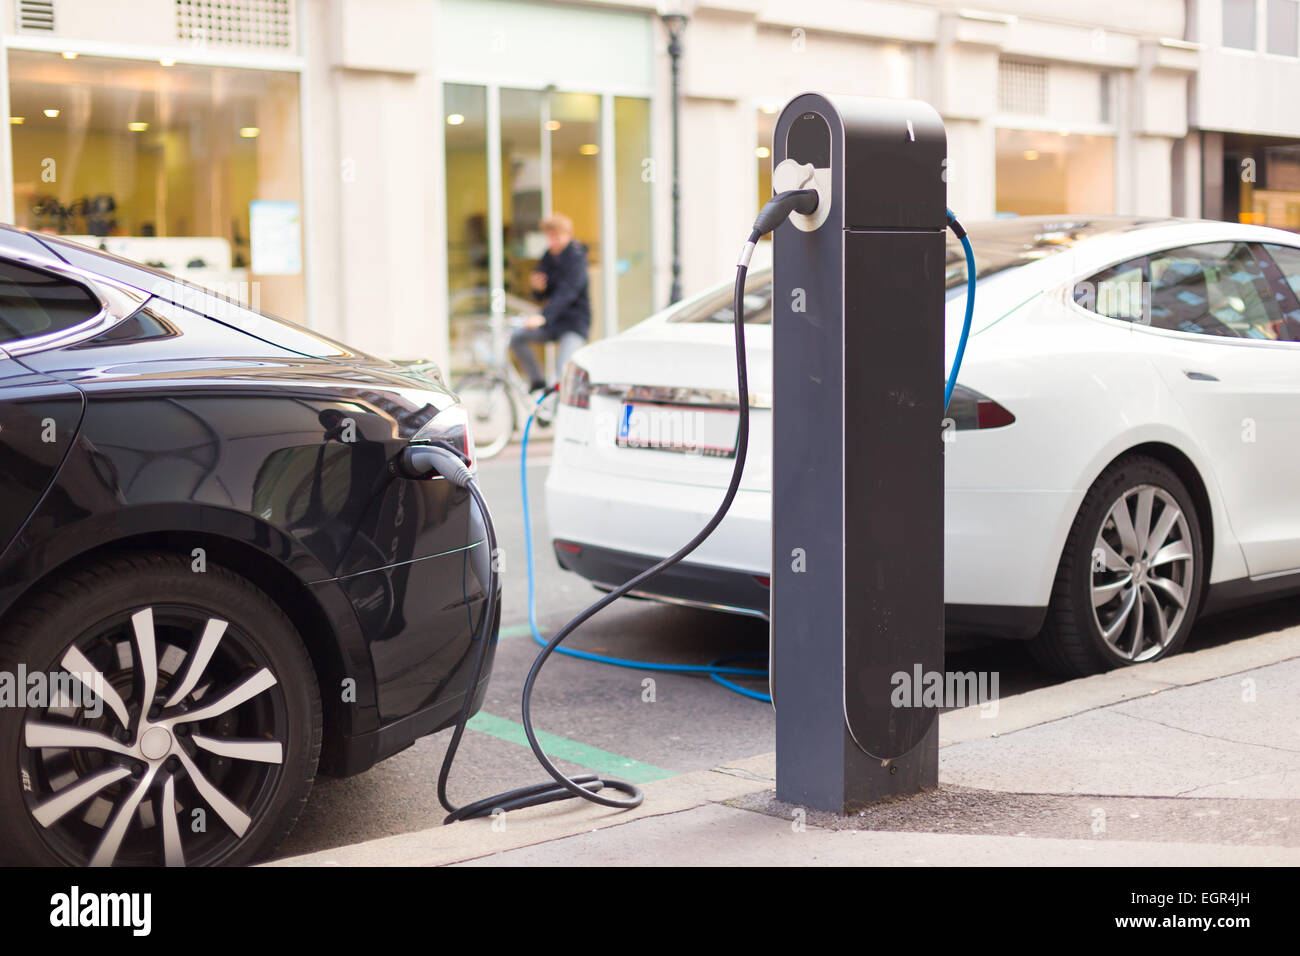 Electric Cars in Charging Station. - Stock Image